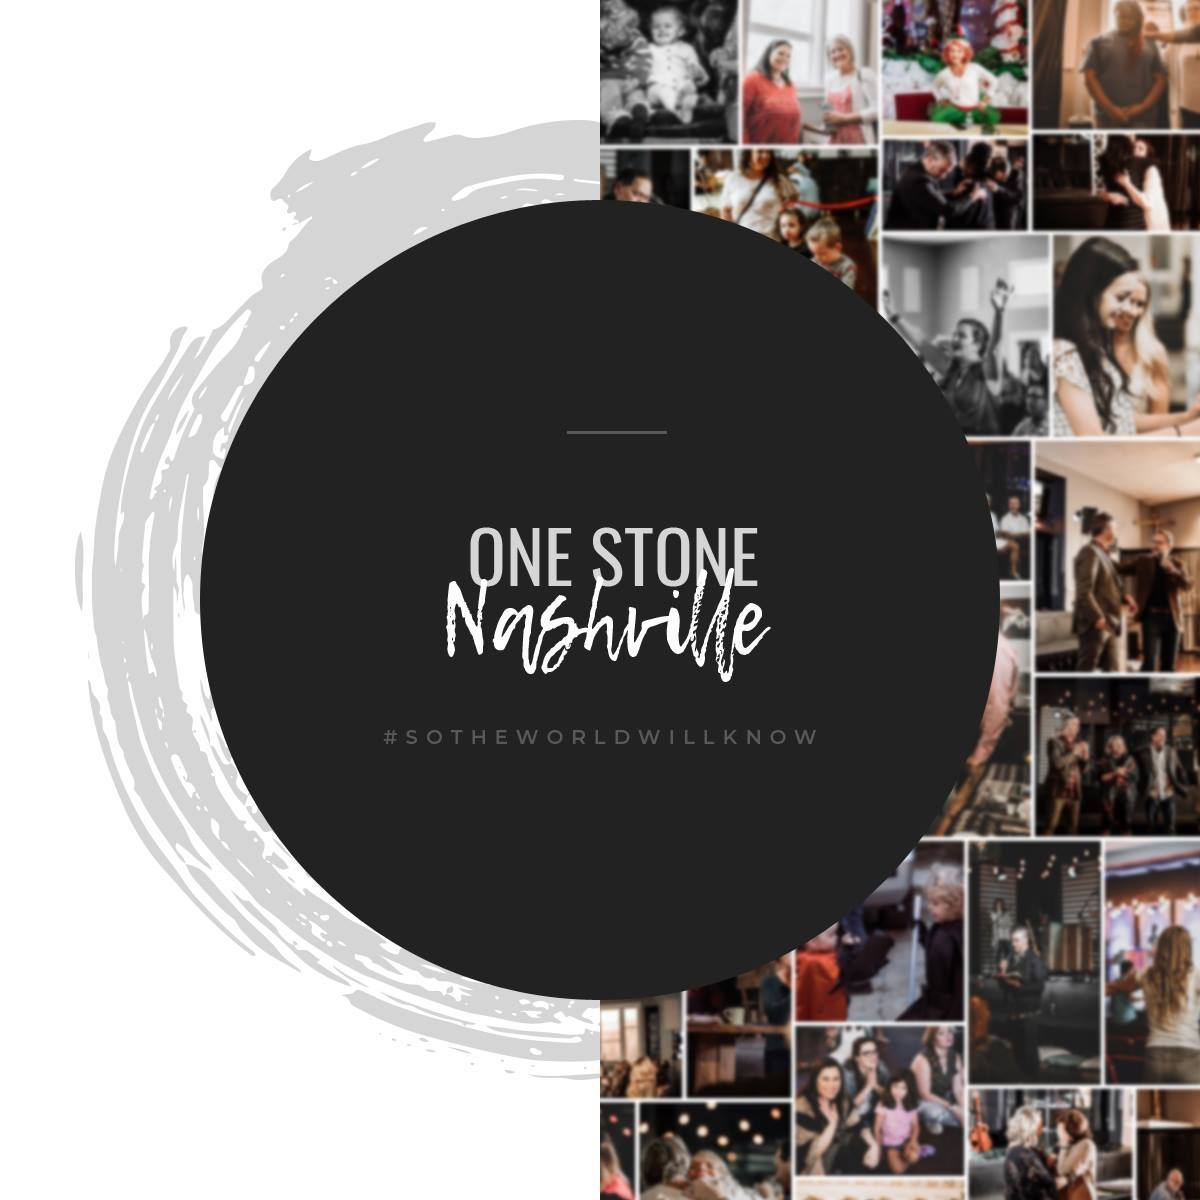 ONE STONE NASHVILLE - We are a community of revival-minded believers focused on hosting the presence of God, both individually and corporately, to impact our community, our city, and our world. Authenticity, transparency, and intentionality are the key values woven into everything we do. Our goal is to create a community where you know you are loved, accepted, and respected just as you are when you walk through our doors.